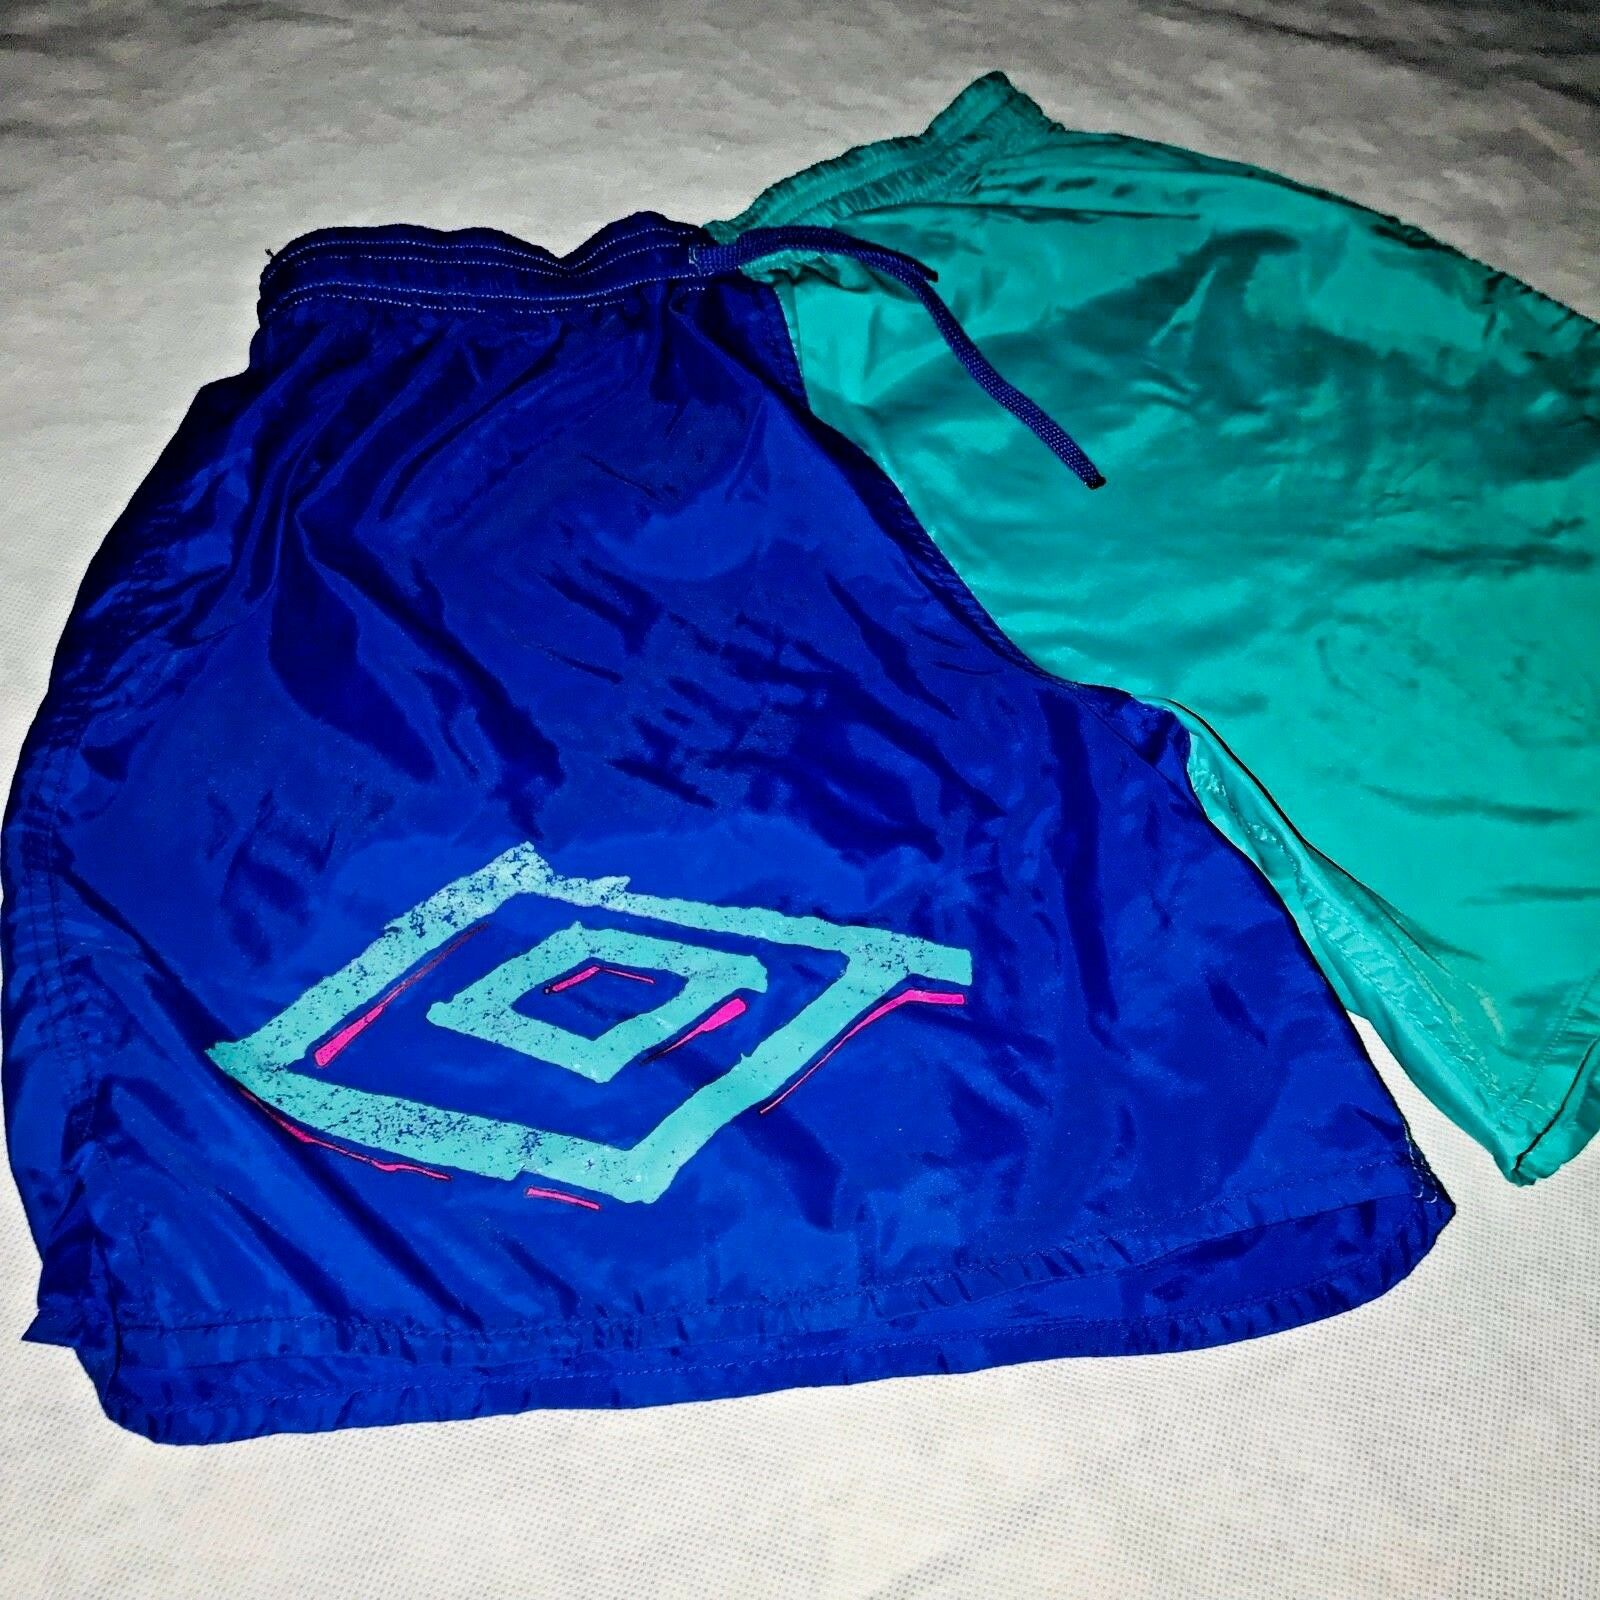 db7e43c3c1a Rare Vintage 90s Umbro Nylon Glanz Soccer Shorts Teal Green Purple Silky  Medium